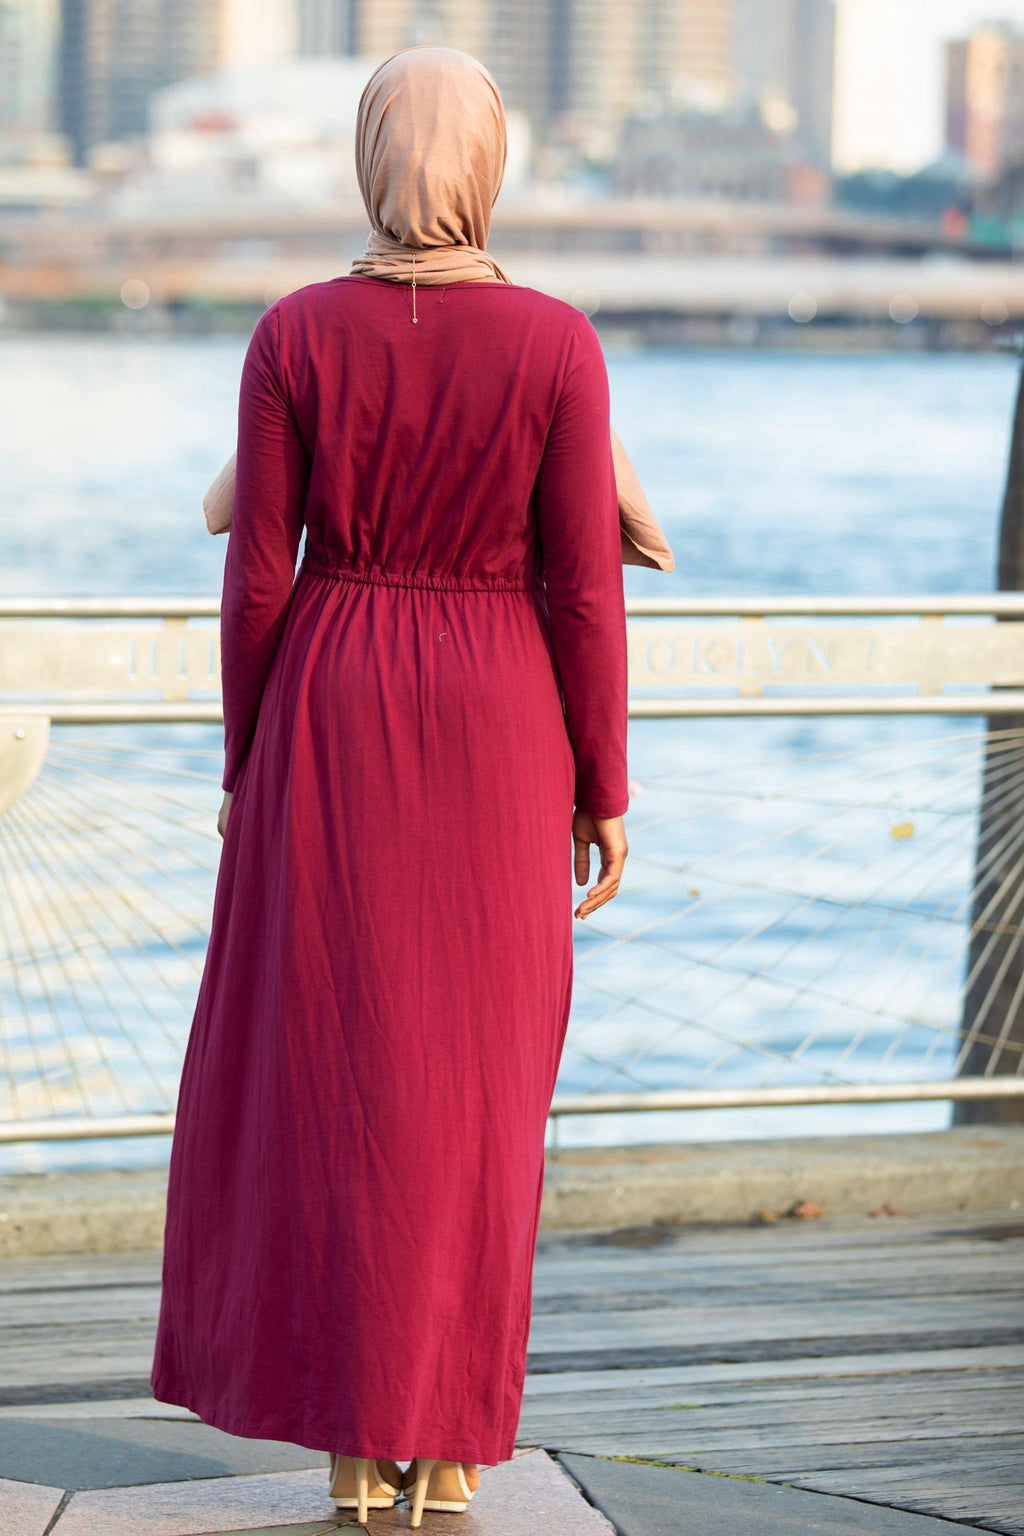 Maroon Drawstring Cotton Long Sleeve Maxi Dress - Abaya, Hijabs, Jilbabs, on sale now at UrbanModesty.com